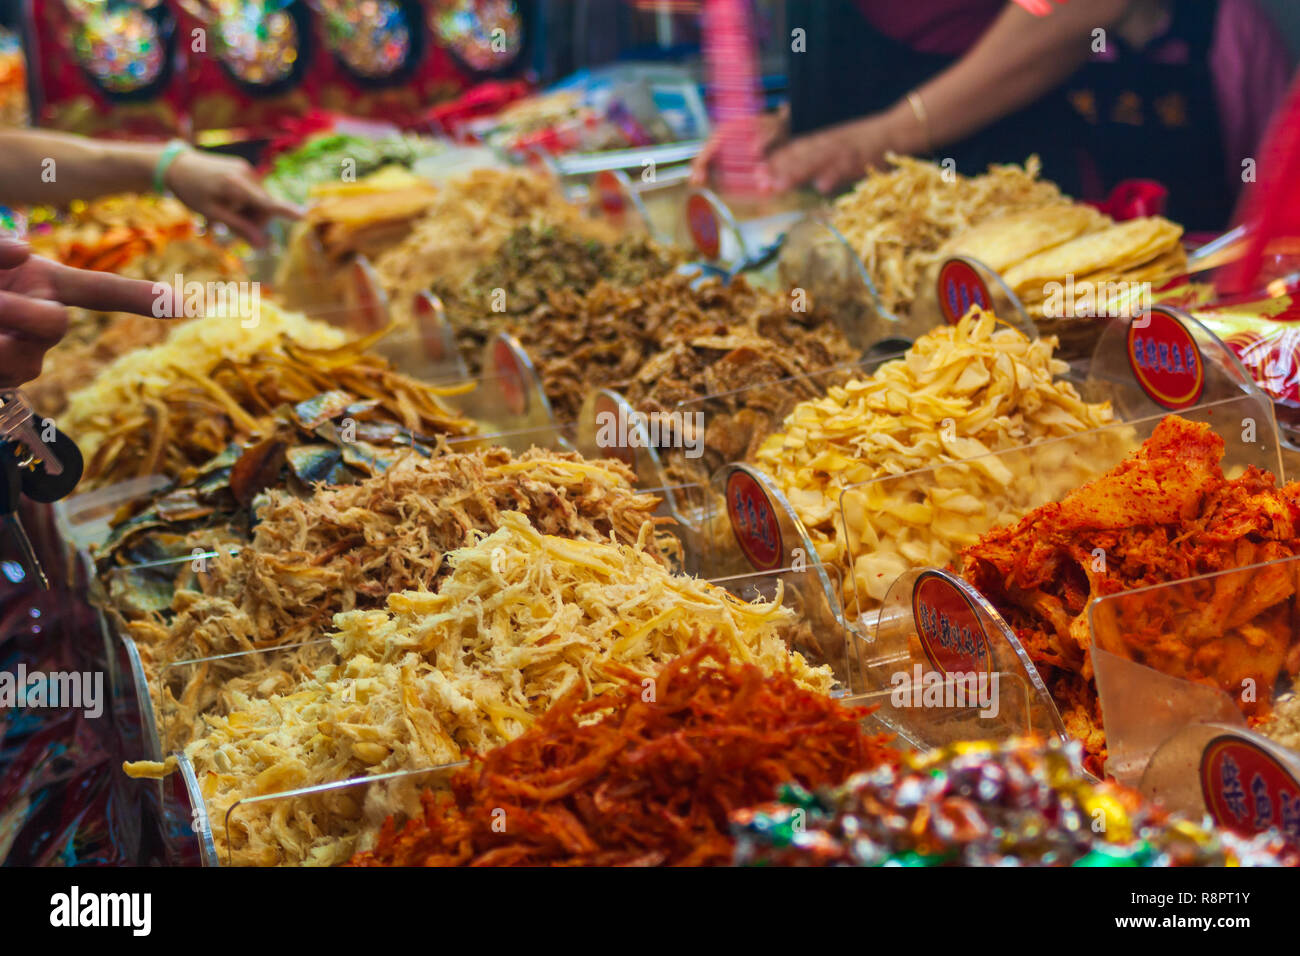 Taiwanese Street Food - Stock Image